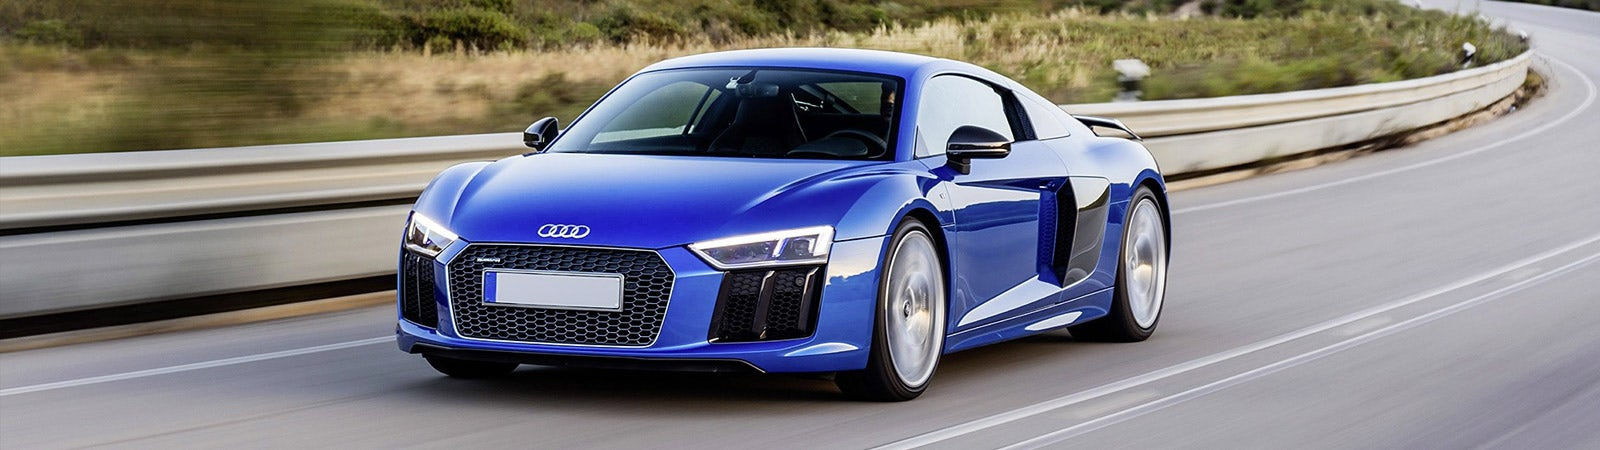 Audi R V Price Specs And Release Date Carwow - Price of audi r8